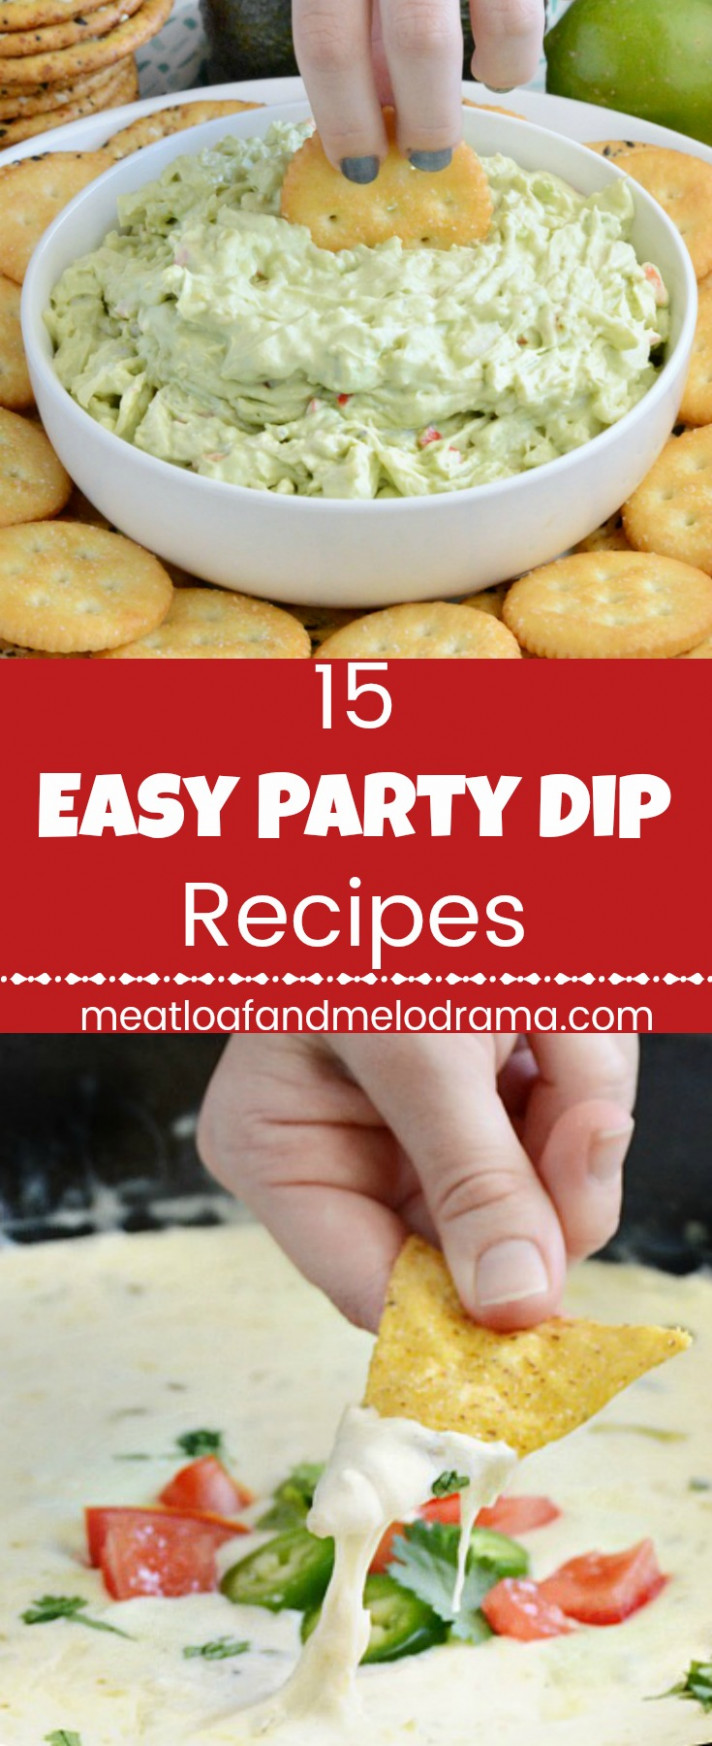 15 Easy Party Dip Recipes - Meatloaf and Melodrama